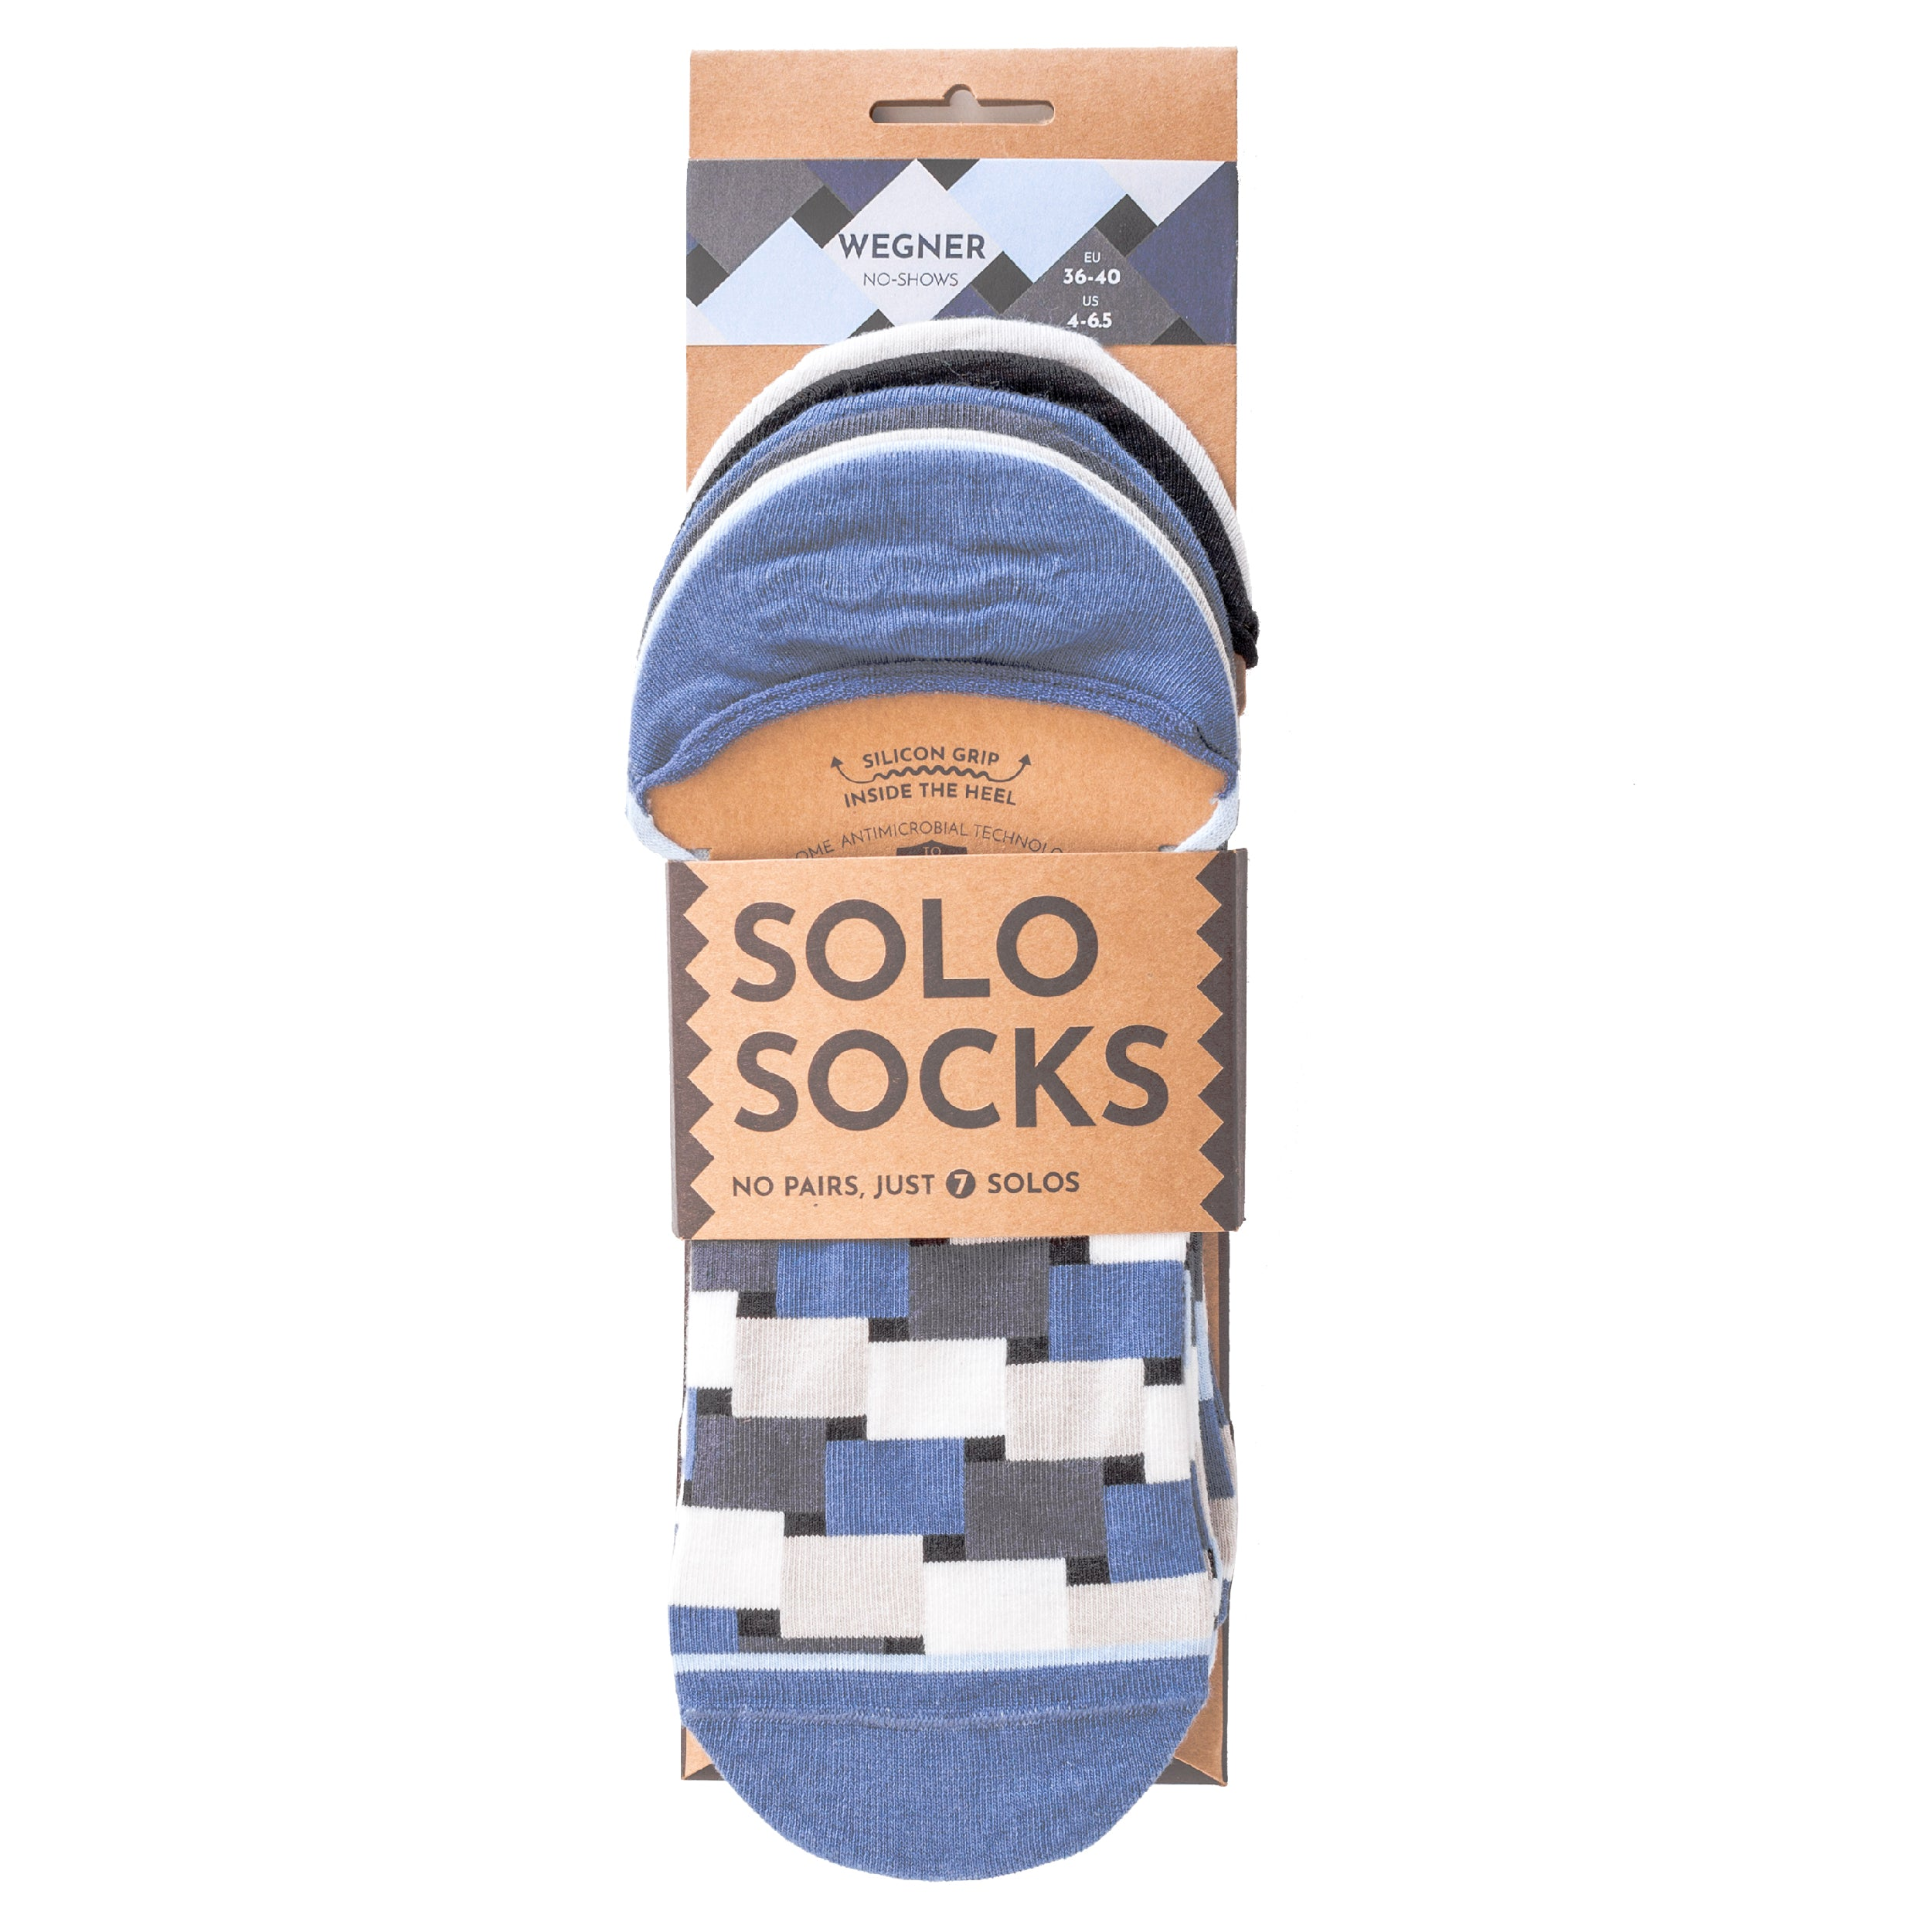 Wegner No-Shows - A pack of 7x1 organic cotton no-show ankle sneaker socks designed to mix & match. Made by SOLOSOCKS™ of Denmark. Sustainable colorful happy Danish design socks for men and women| High quality but cheap and durable fashion socks | Worldwide delivery | Free shipping above €40 | Reduce textile waste by 41%